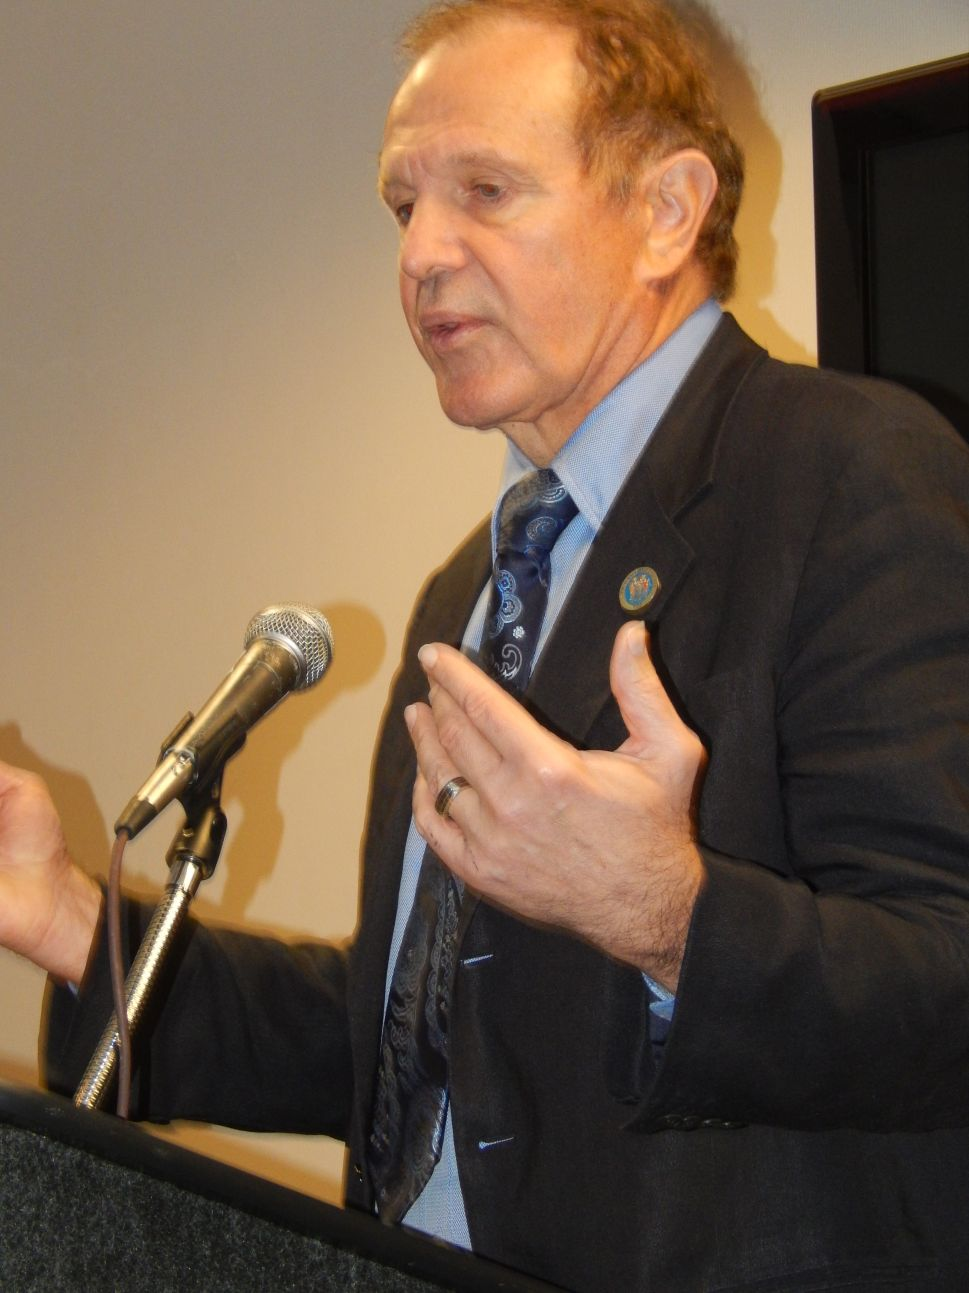 Lesniak proposes dumping political appointees to the Port Authority of NY and NJ